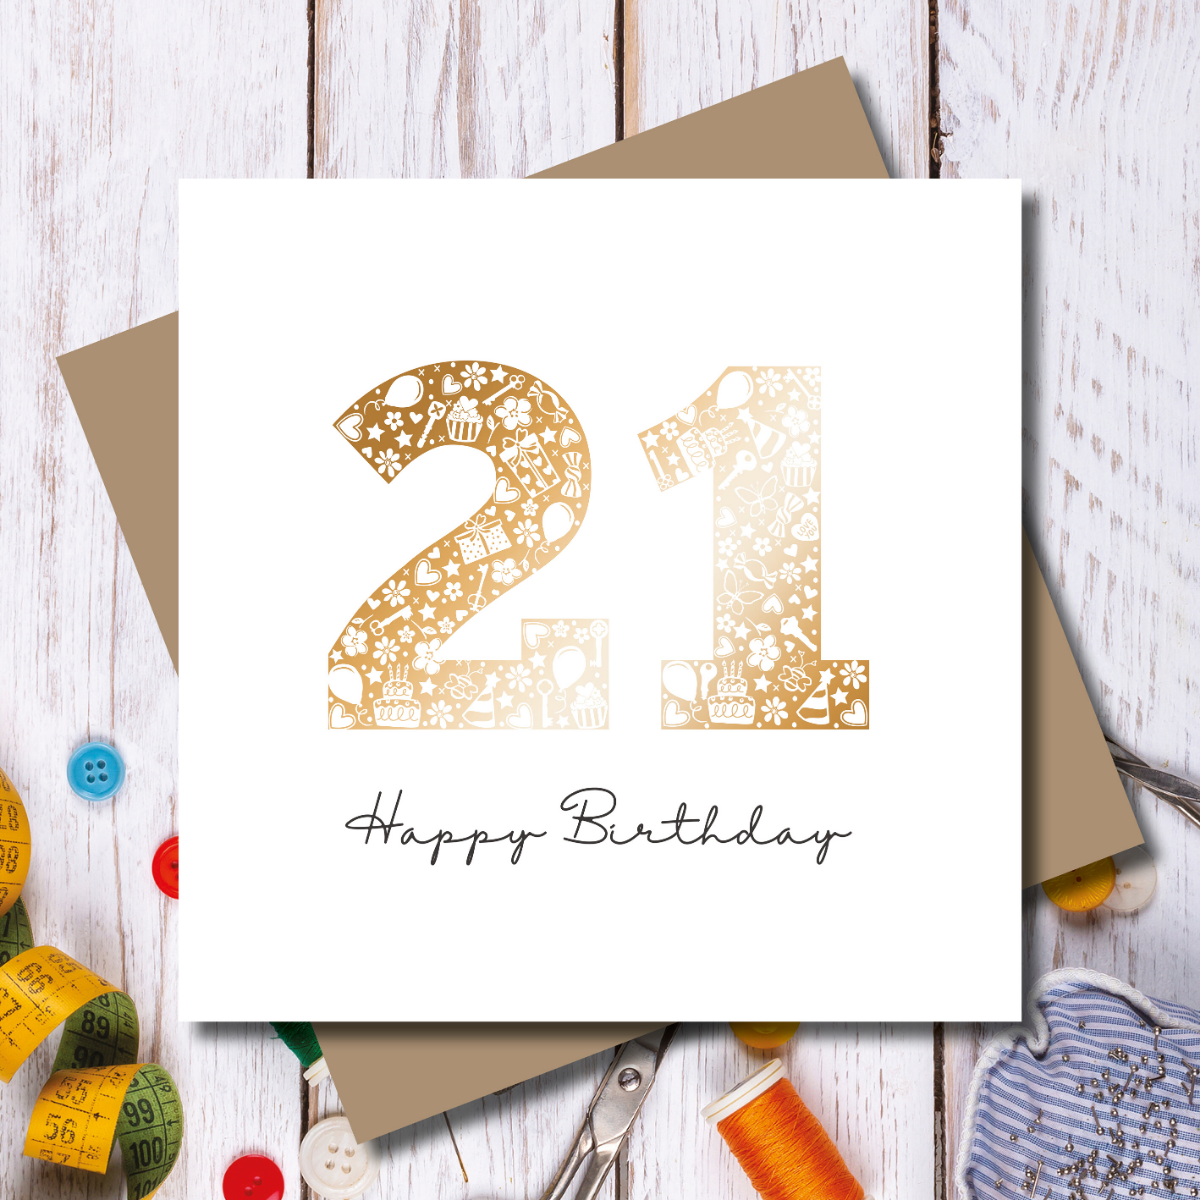 Happy Birthday Card - 21